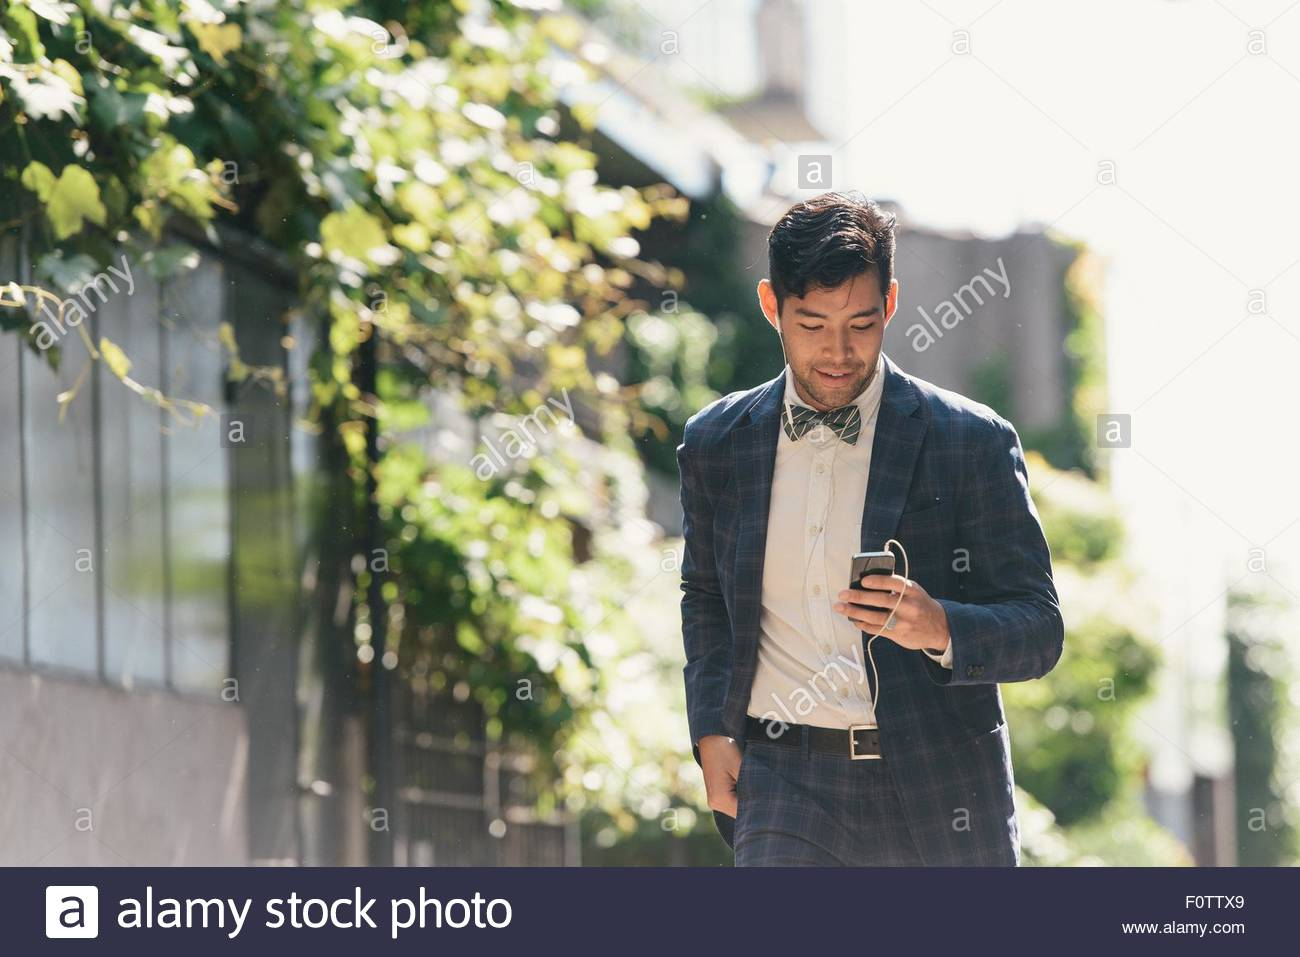 Classy businessman choisir musique smartphone, West Village, Manhattan, USA Photo Stock